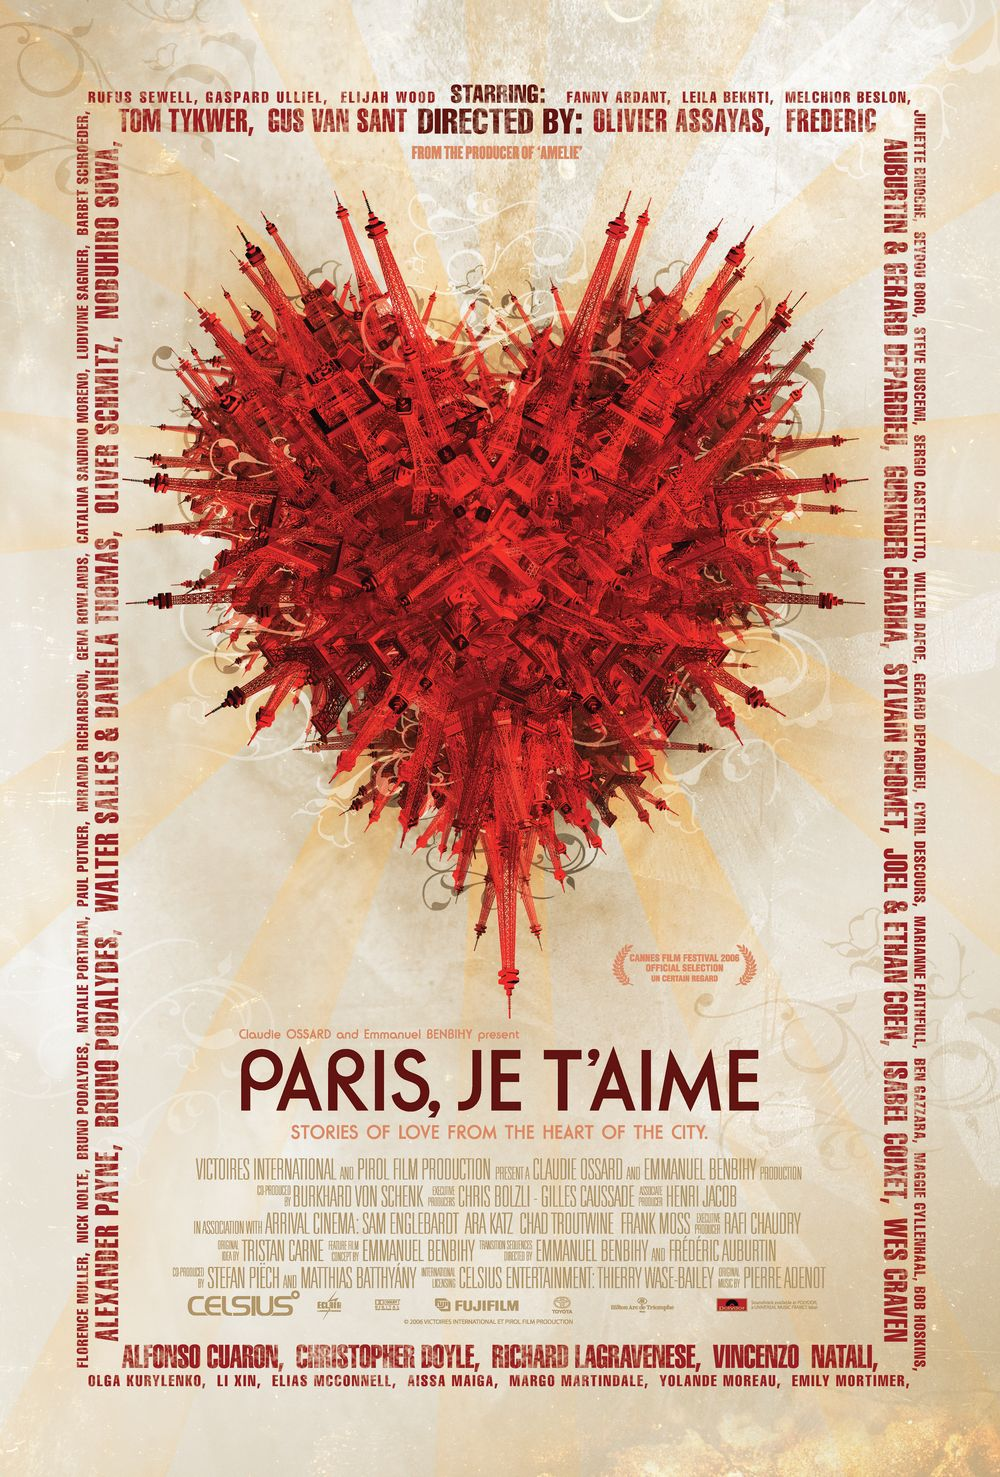 《Paris, je t'aime》 走馬看巴黎